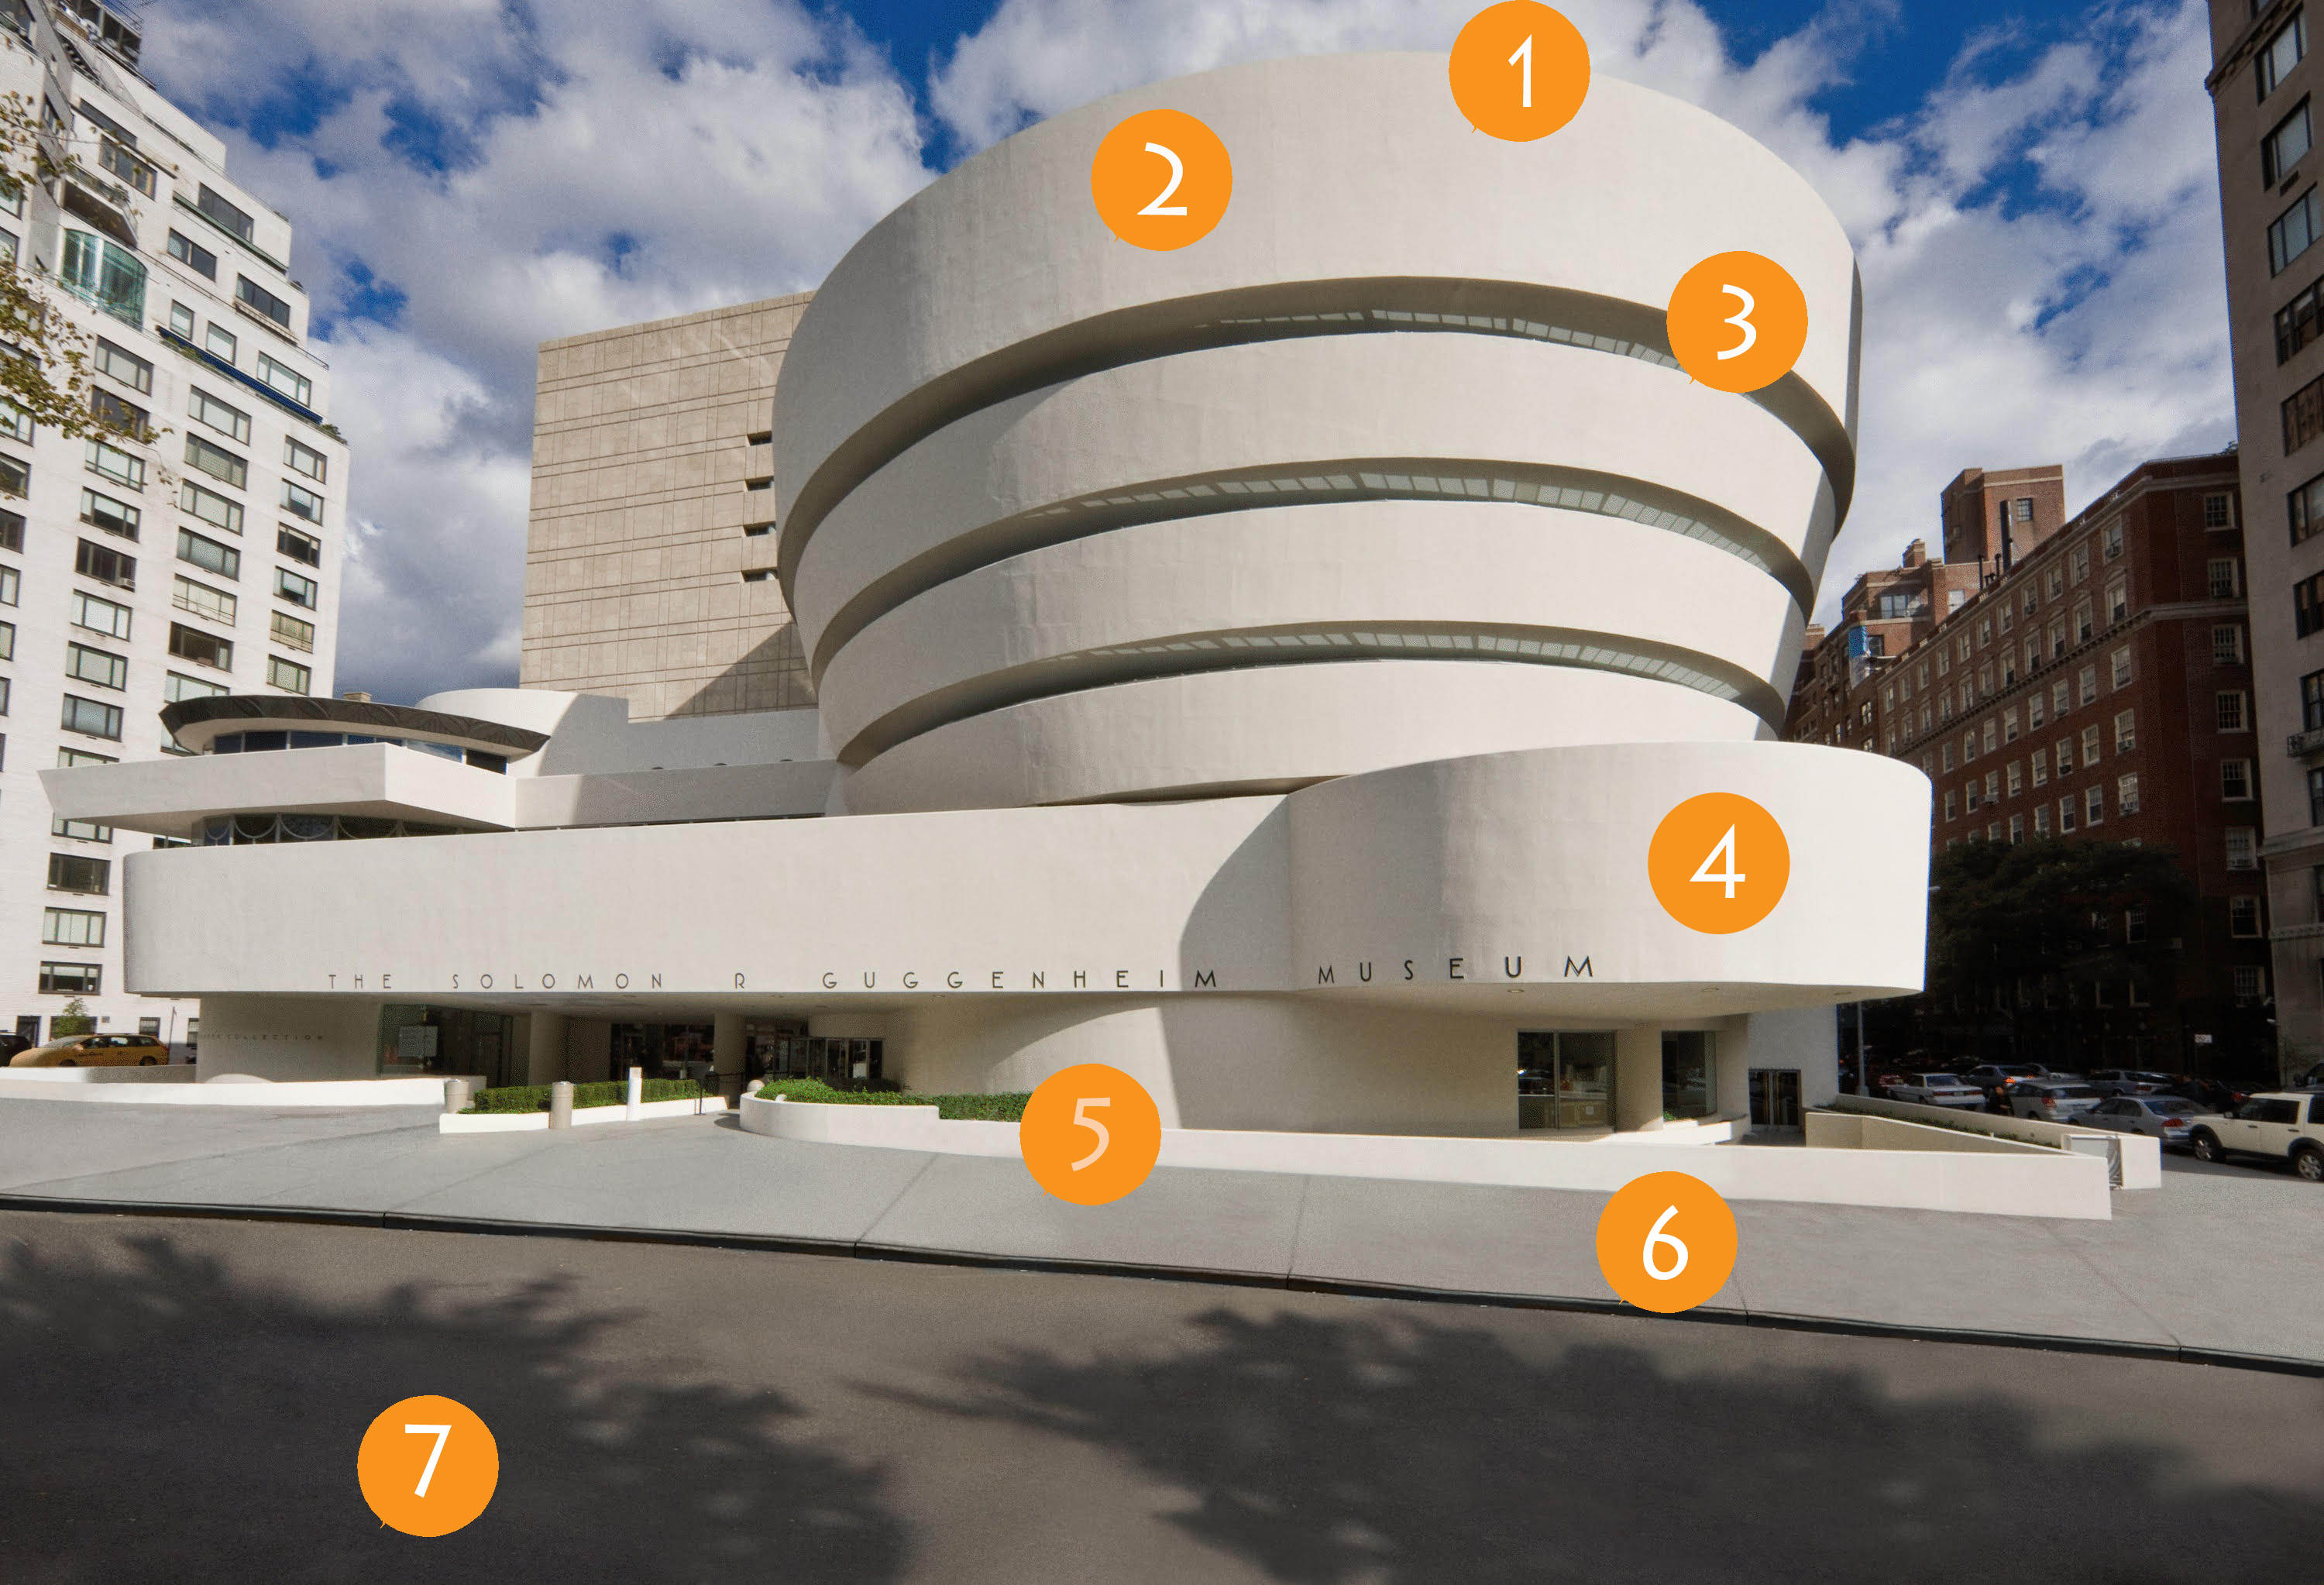 External image of the Guggenheim museum with orange dots on the outside to point out points of interest for the article